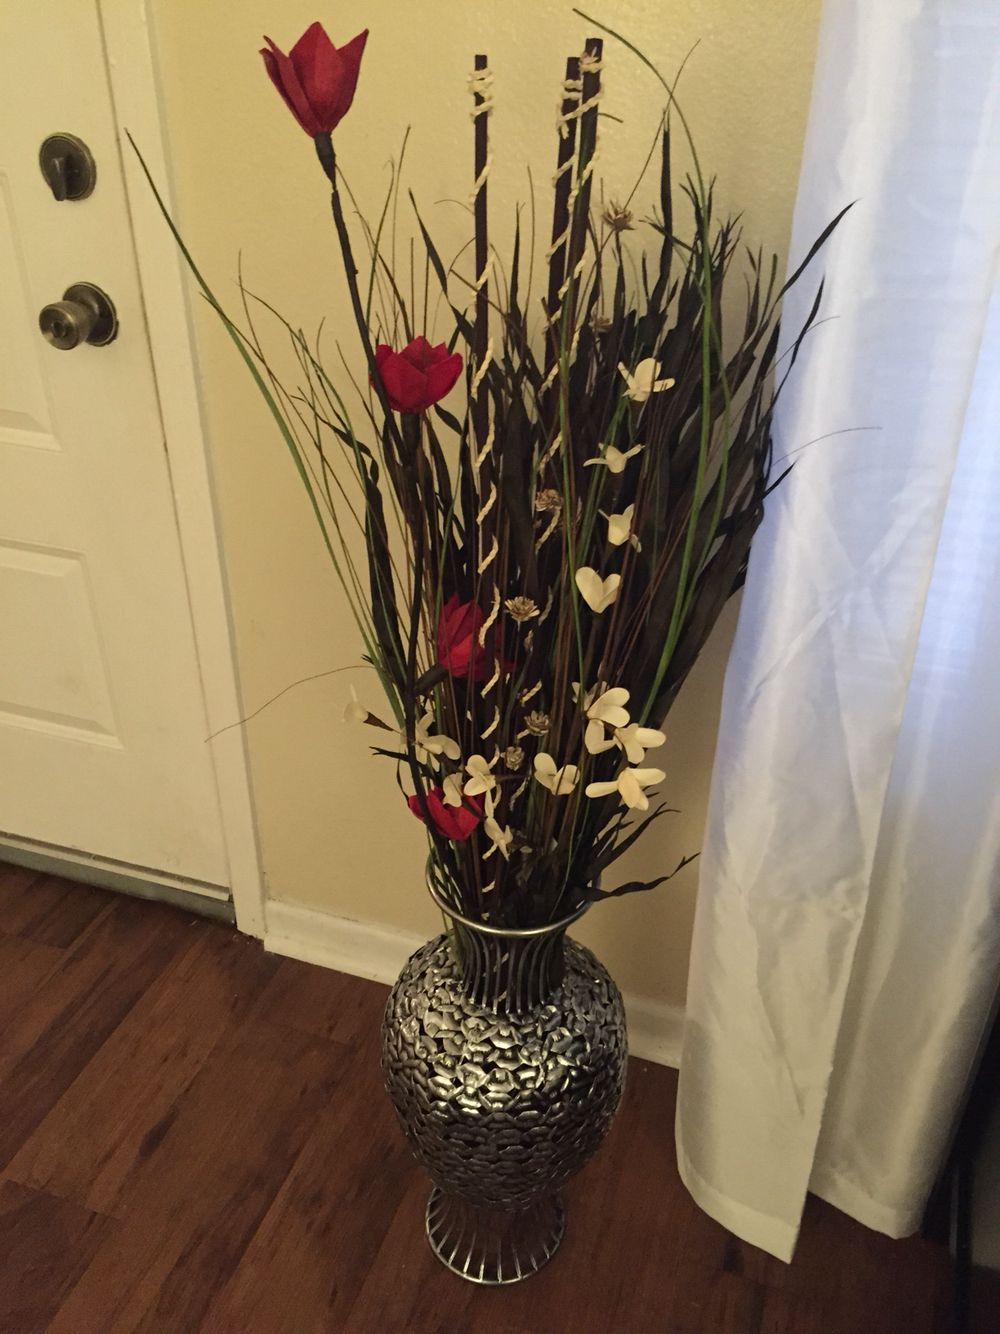 Fantastic My floor vase. The floor vase was purchased from Ross as well as  WN98